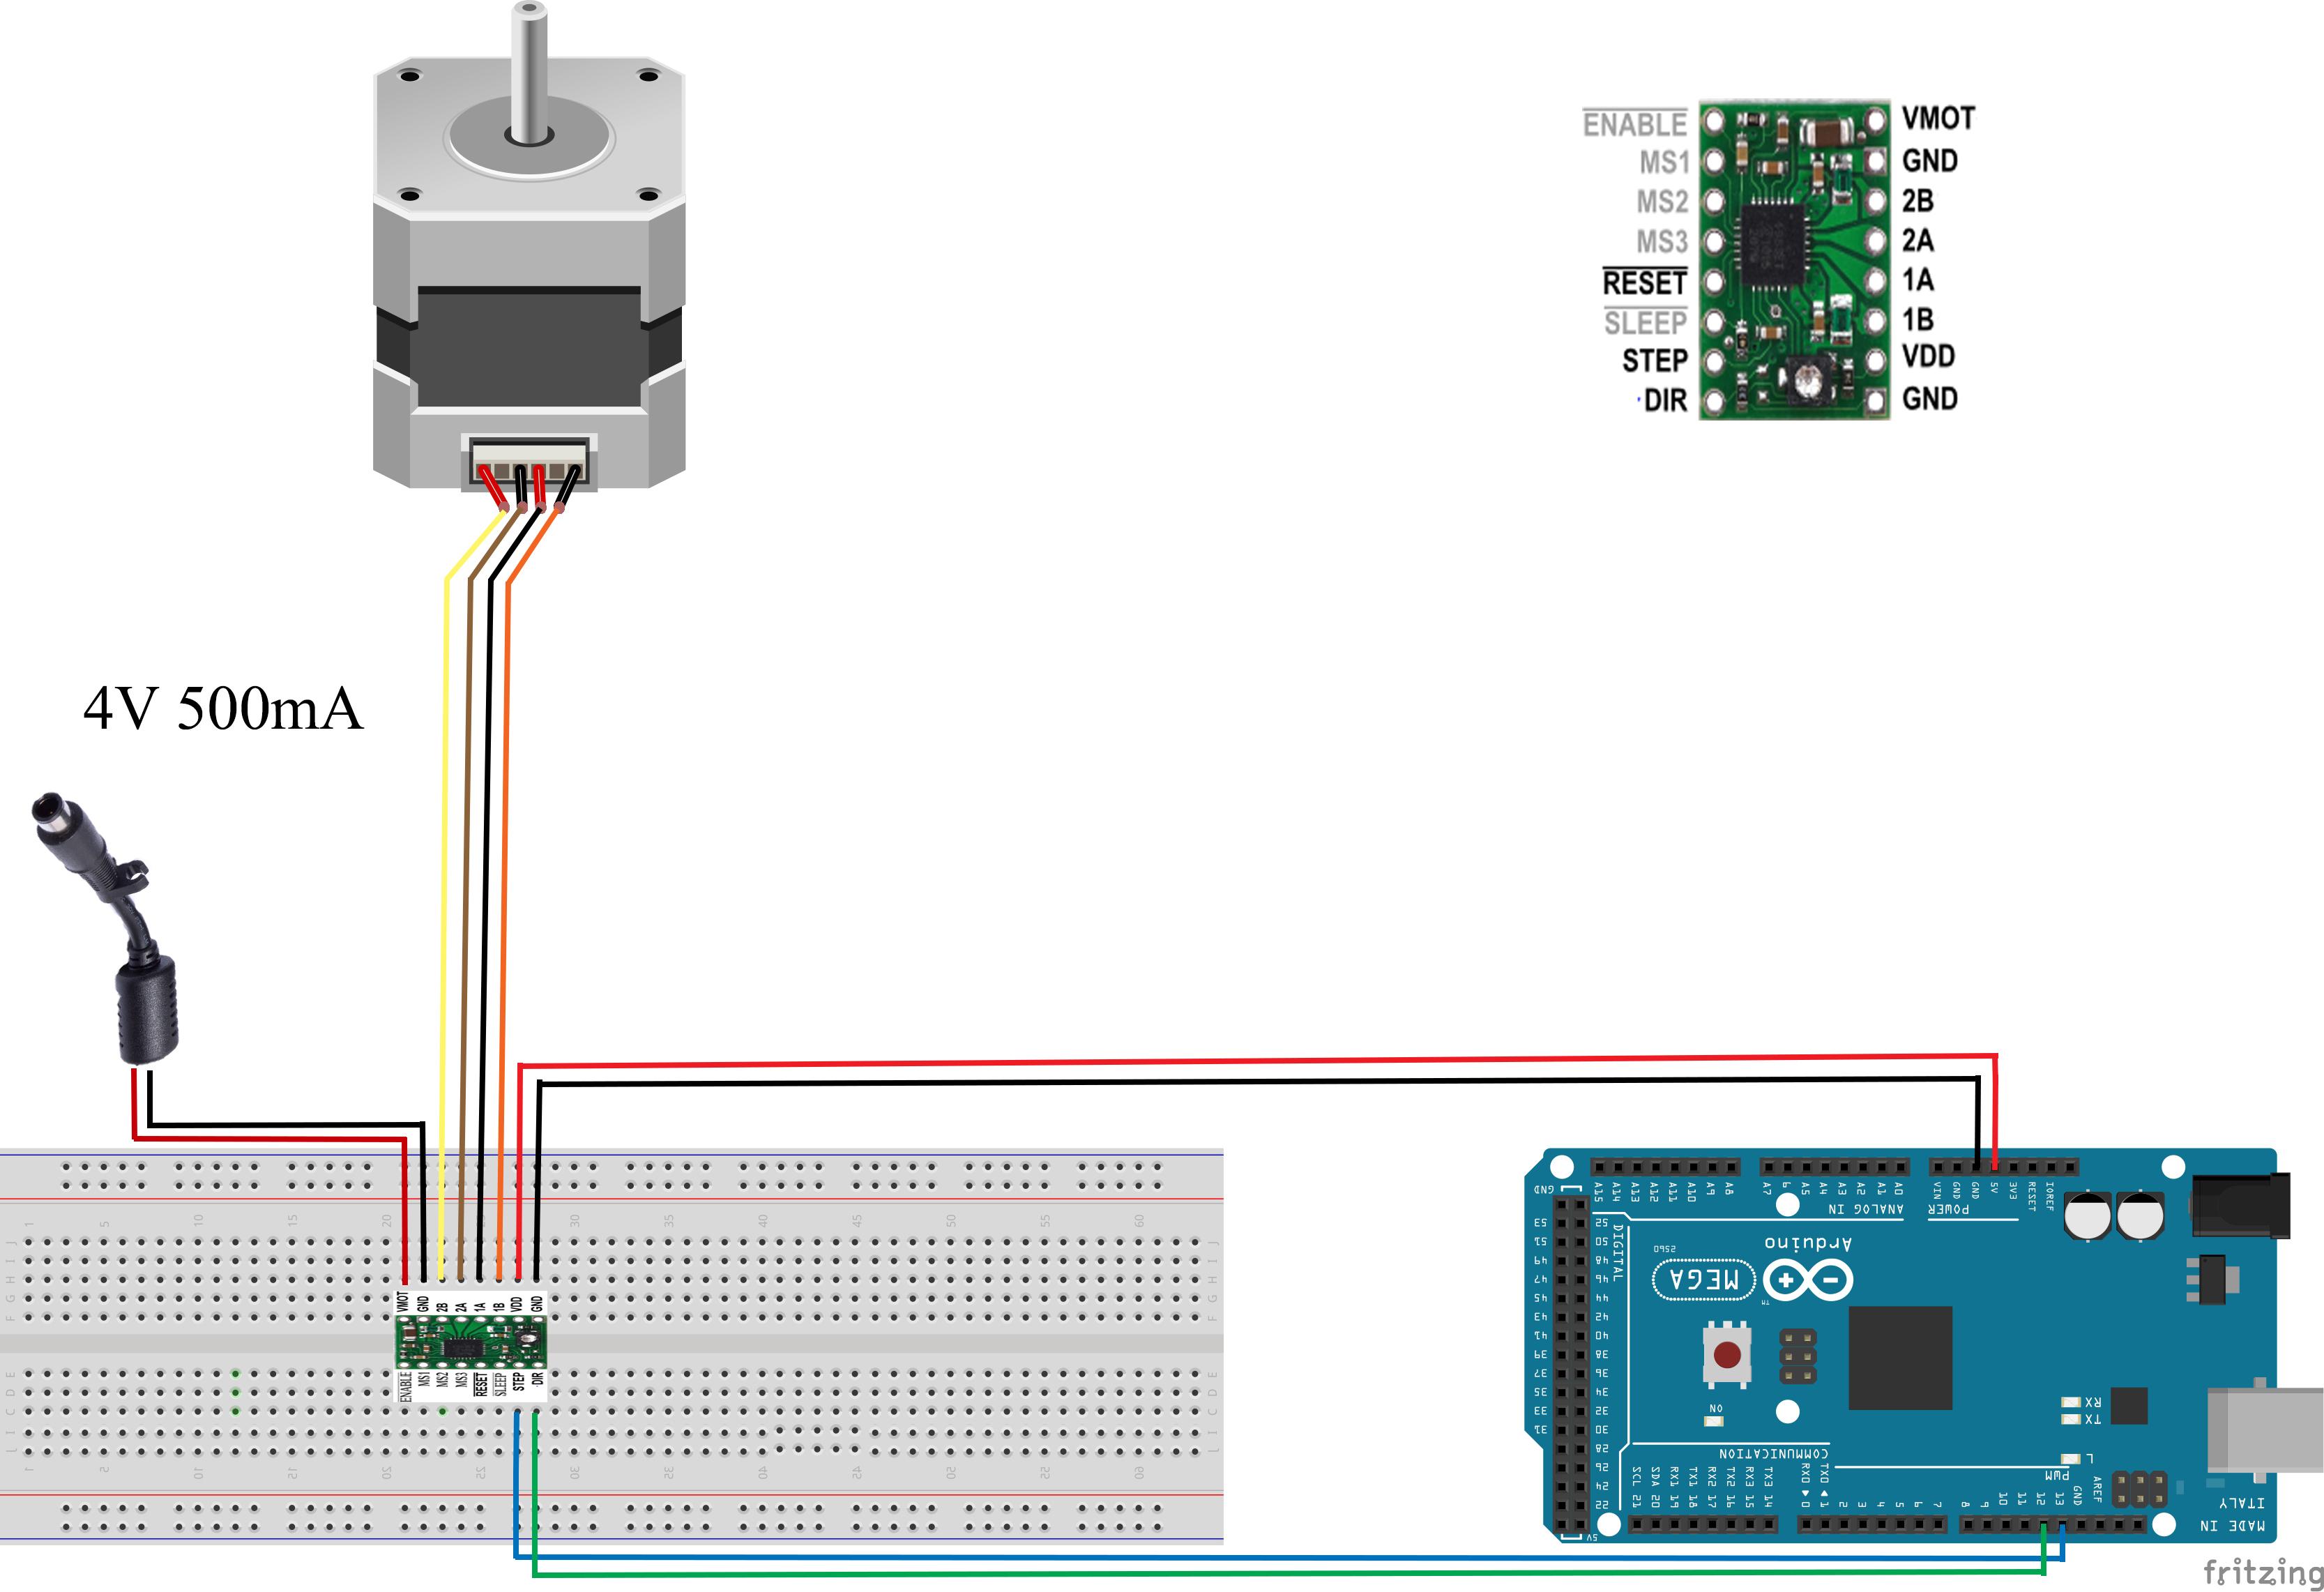 19ca04e447a1c2e5466630b4ced0658d7496e630 pololu a4988 and nema17 stepper motor motor controllers drivers a4988 wiring diagram at crackthecode.co